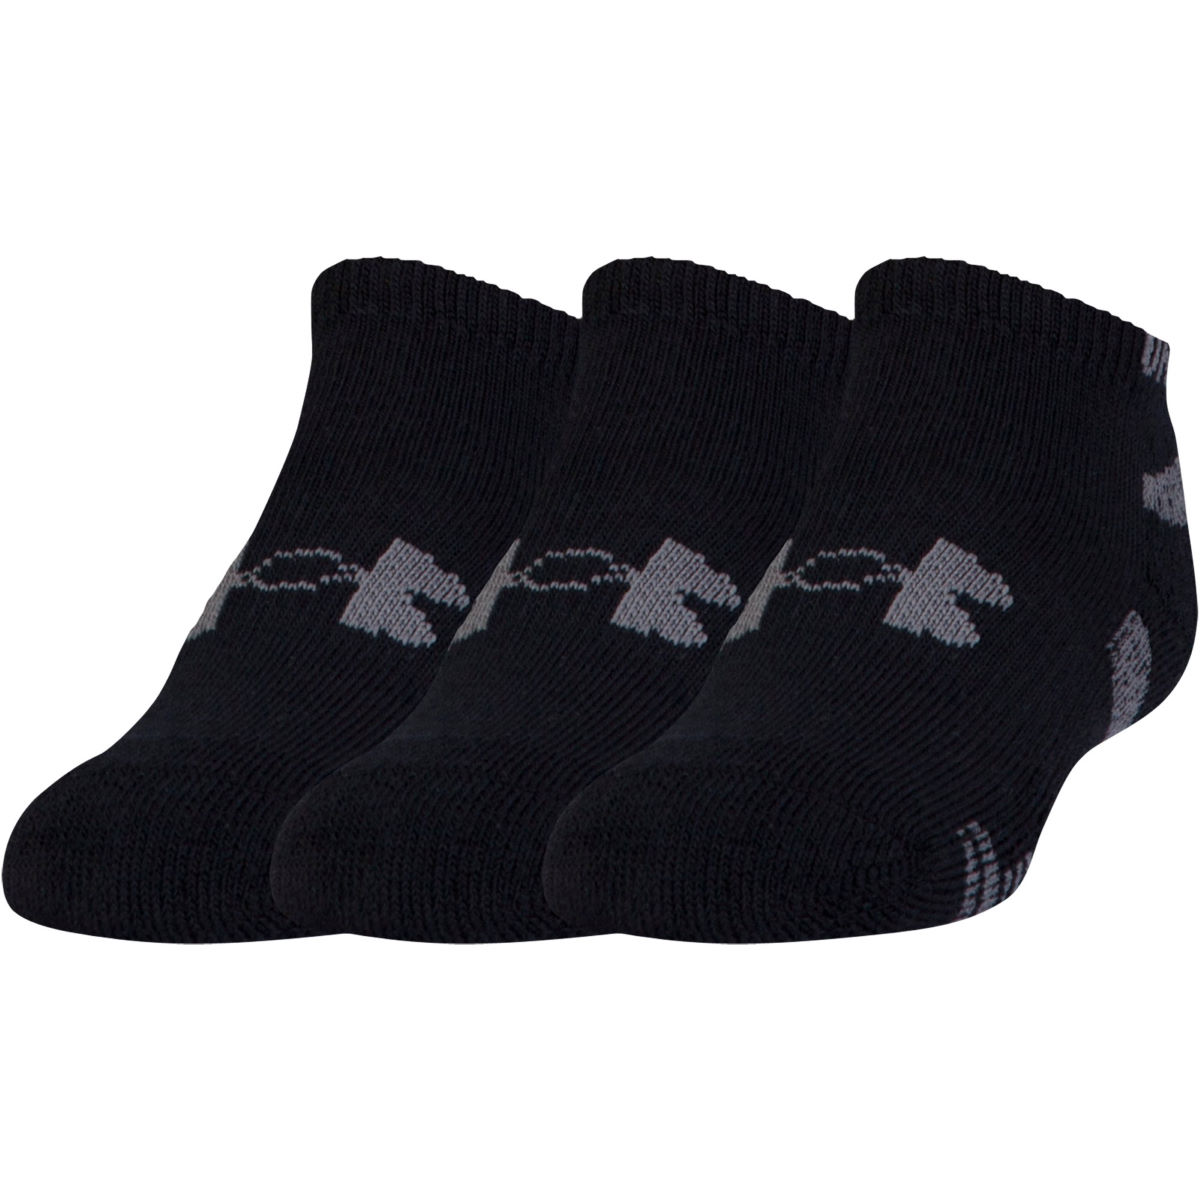 Chaussettes Under Armour HeatGear No Show (lot de 3) - M Noir